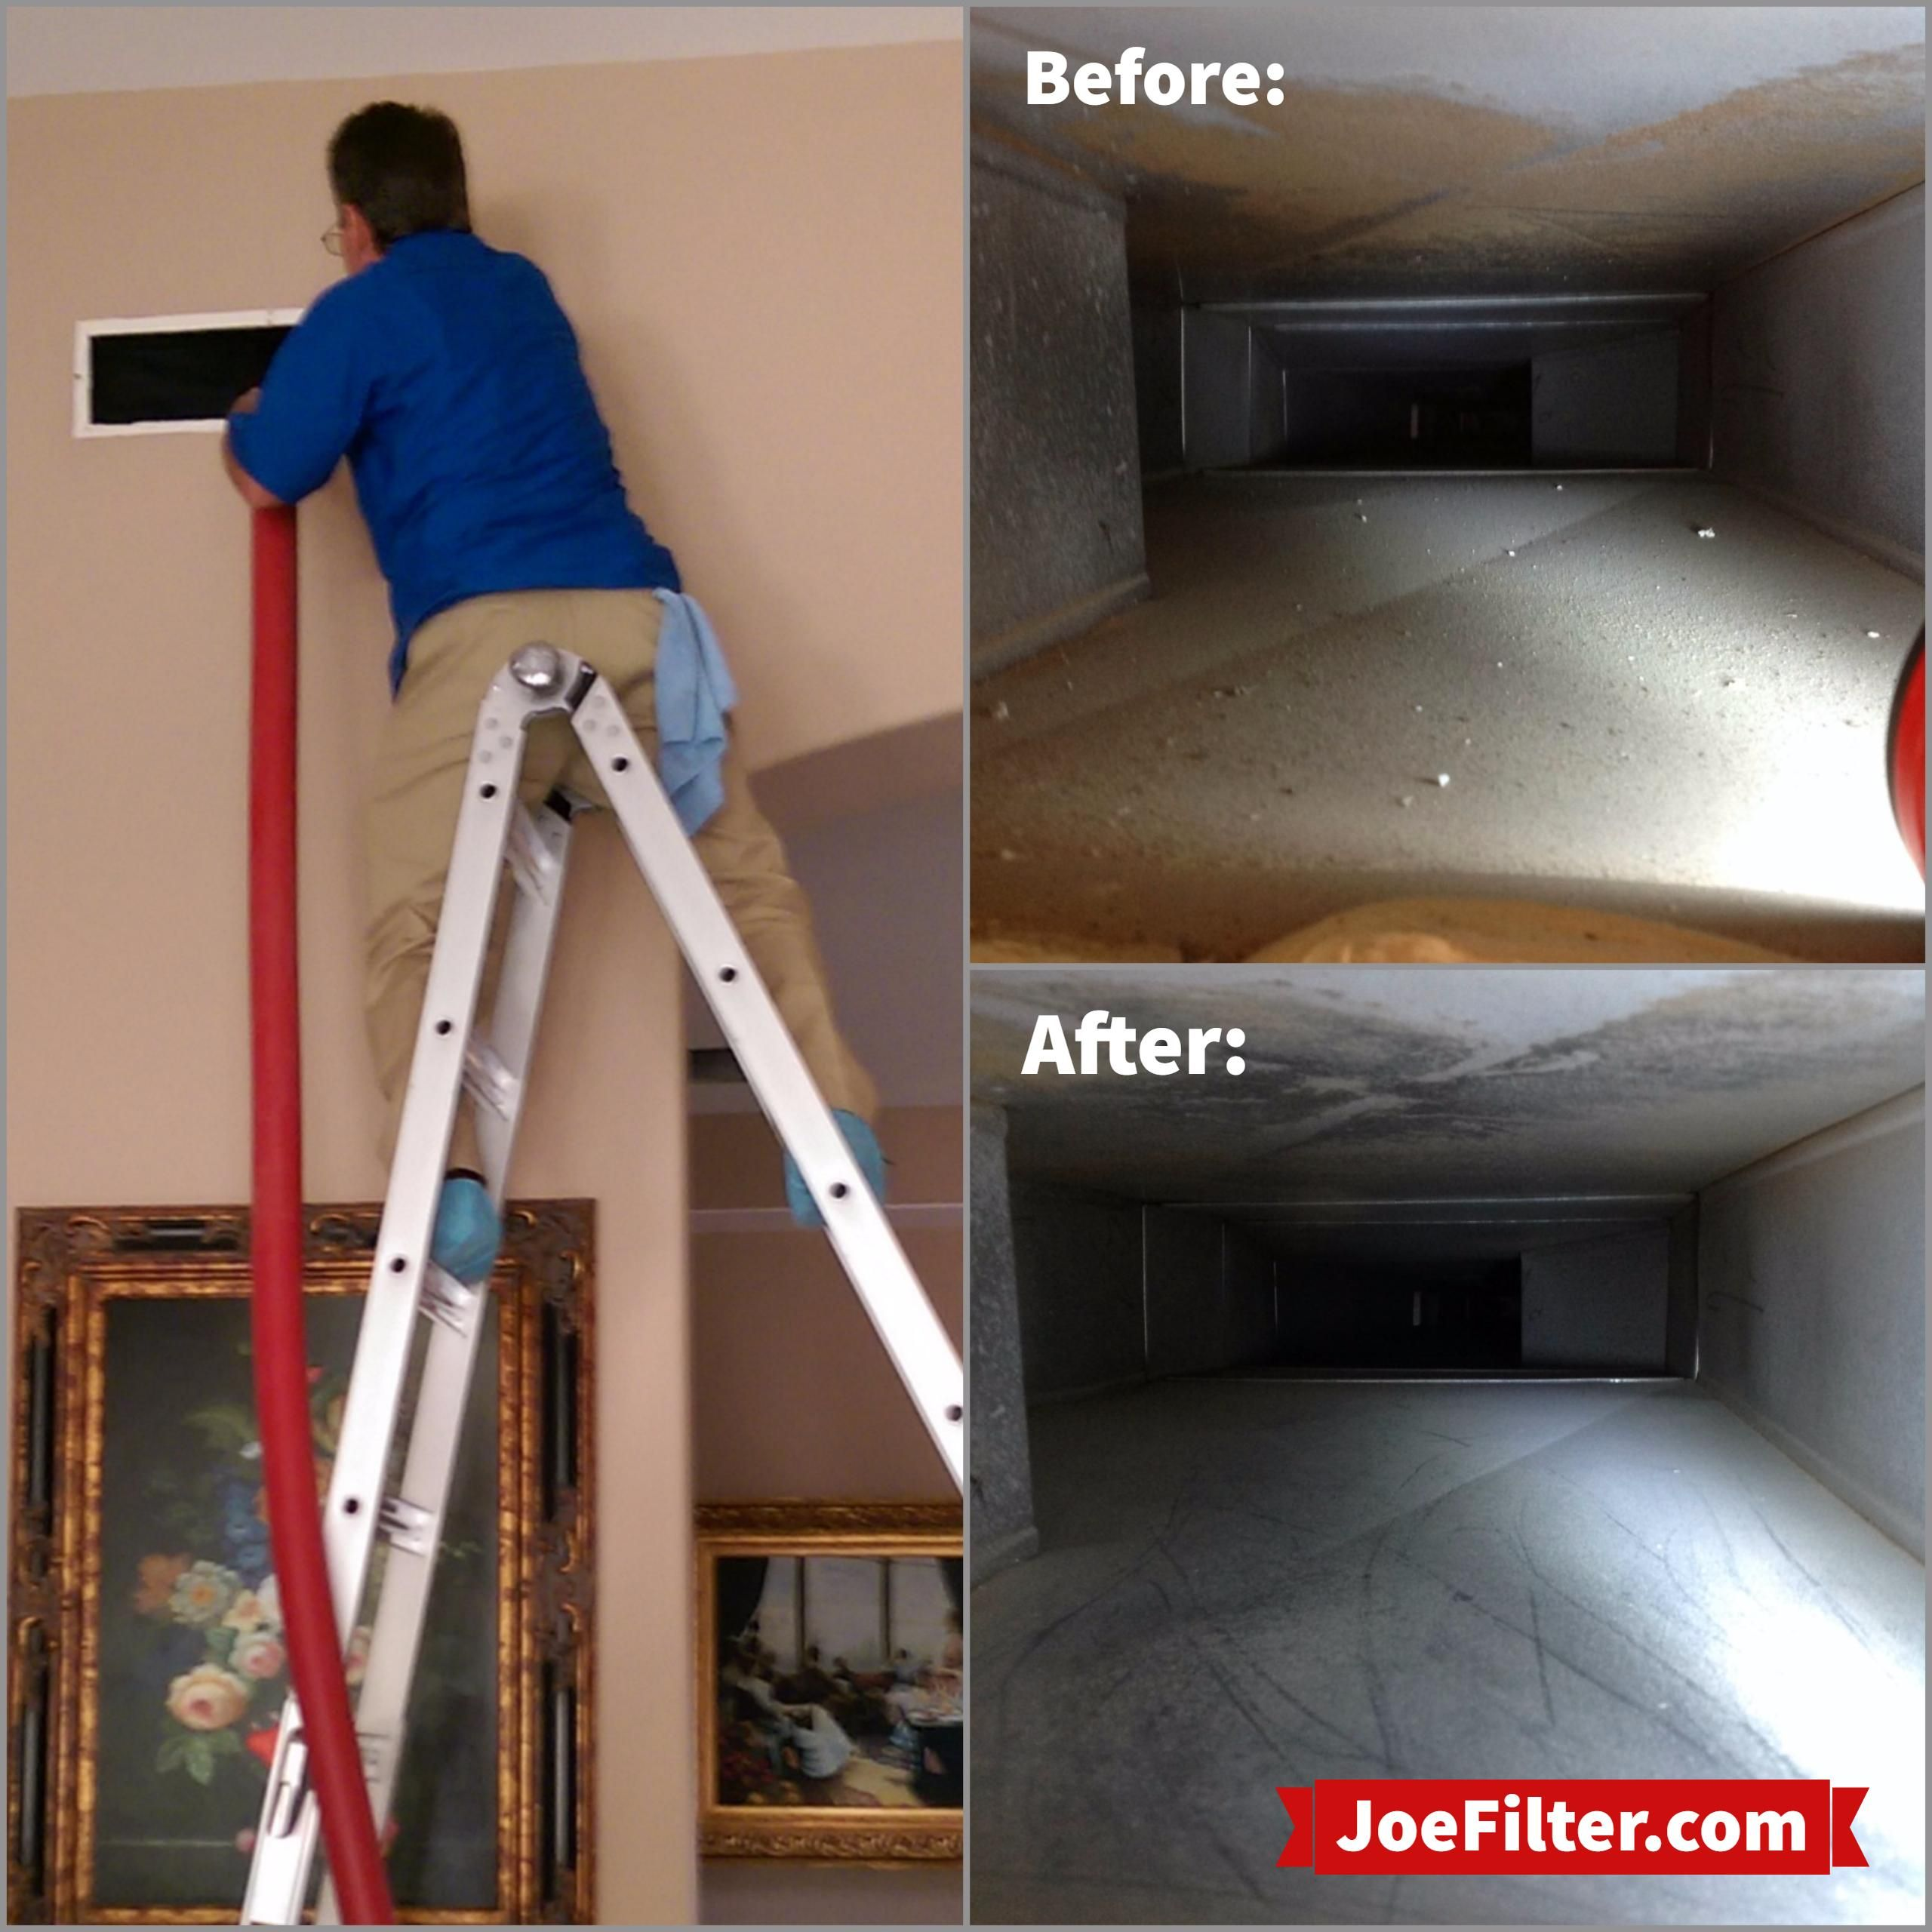 Air Duct Cleaning is an important step in improving your